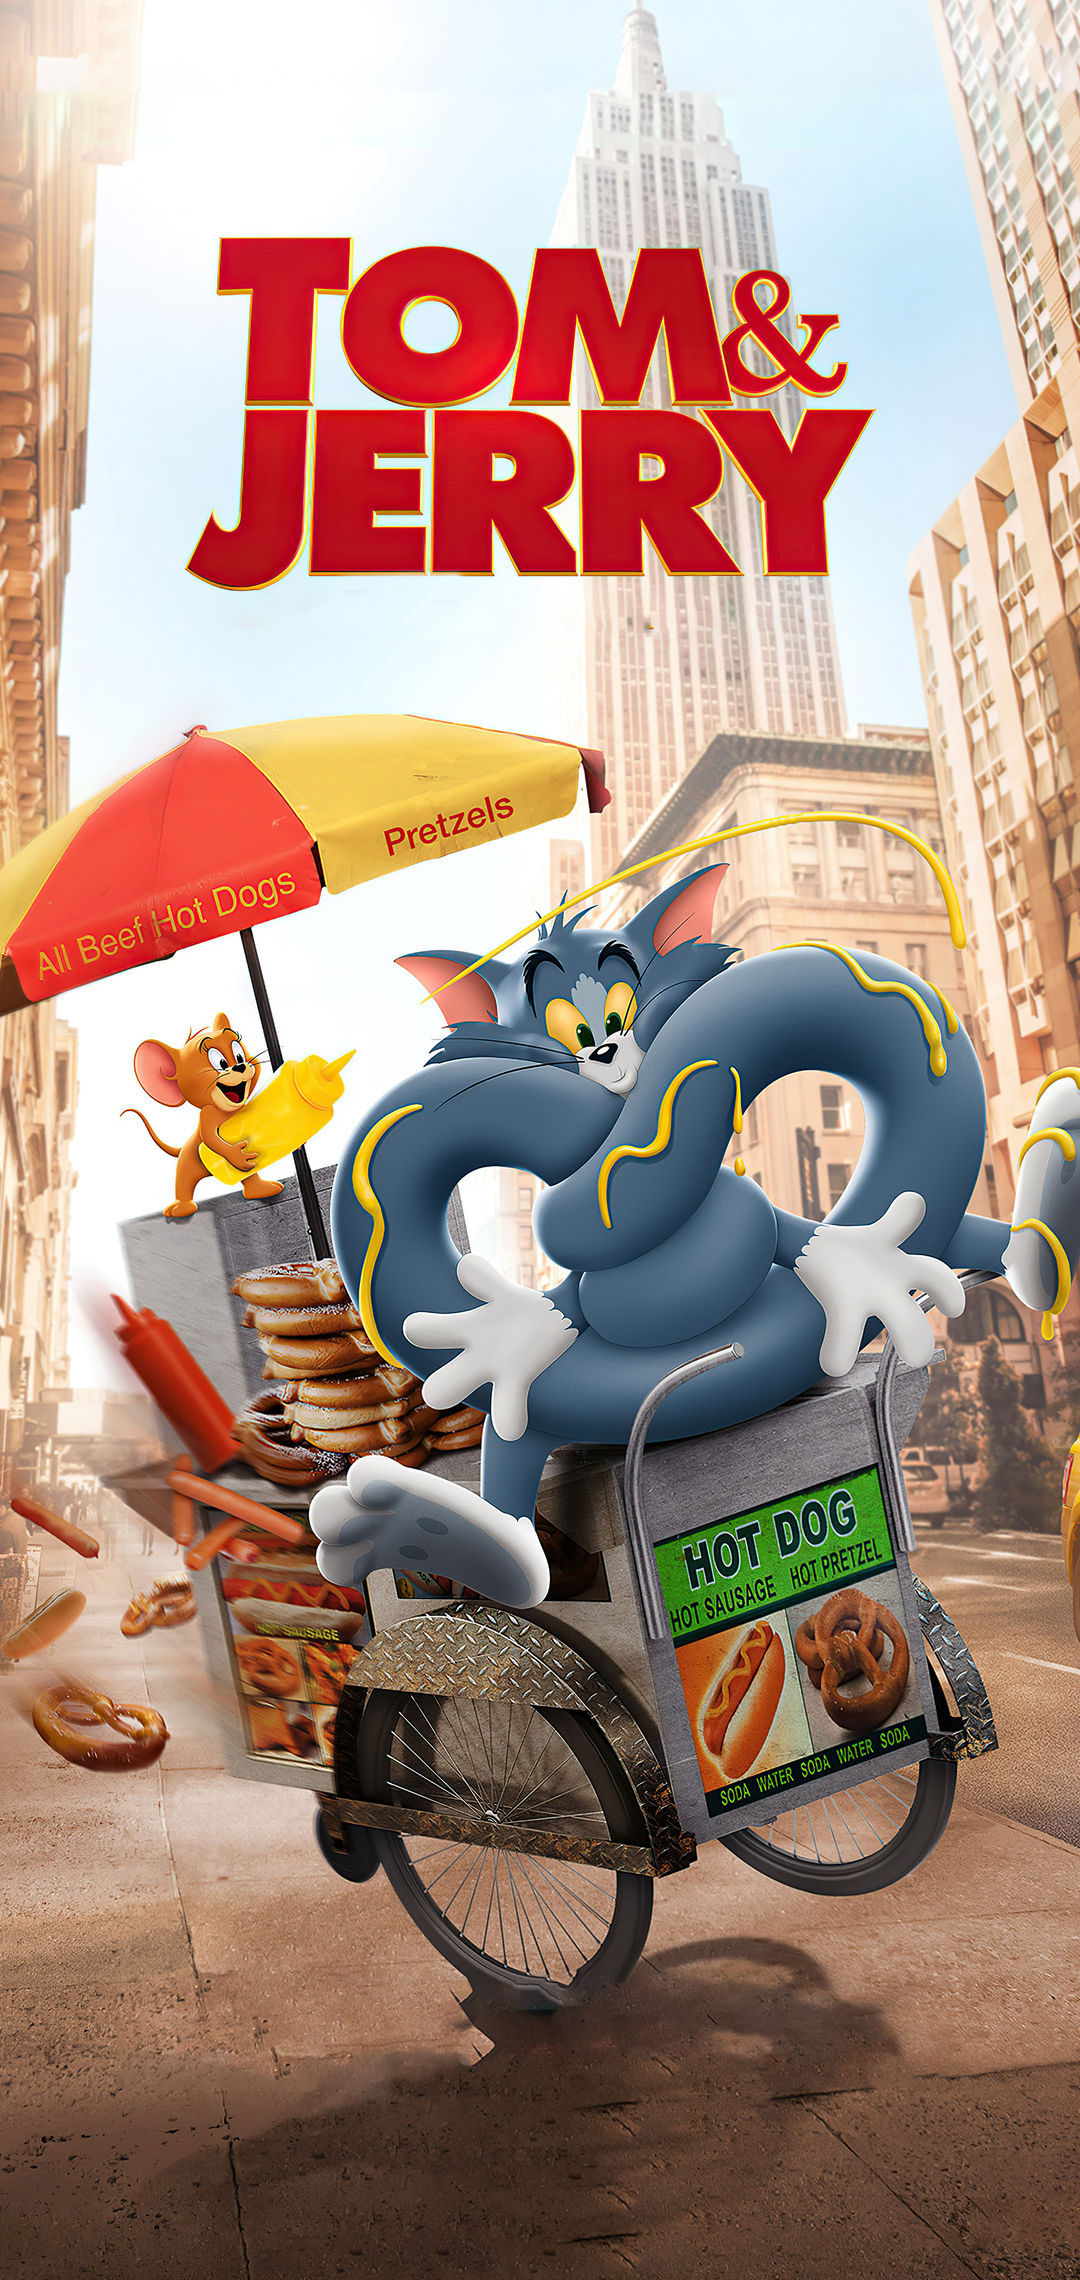 tom-and-jerry-2021-4k-wb.jpg